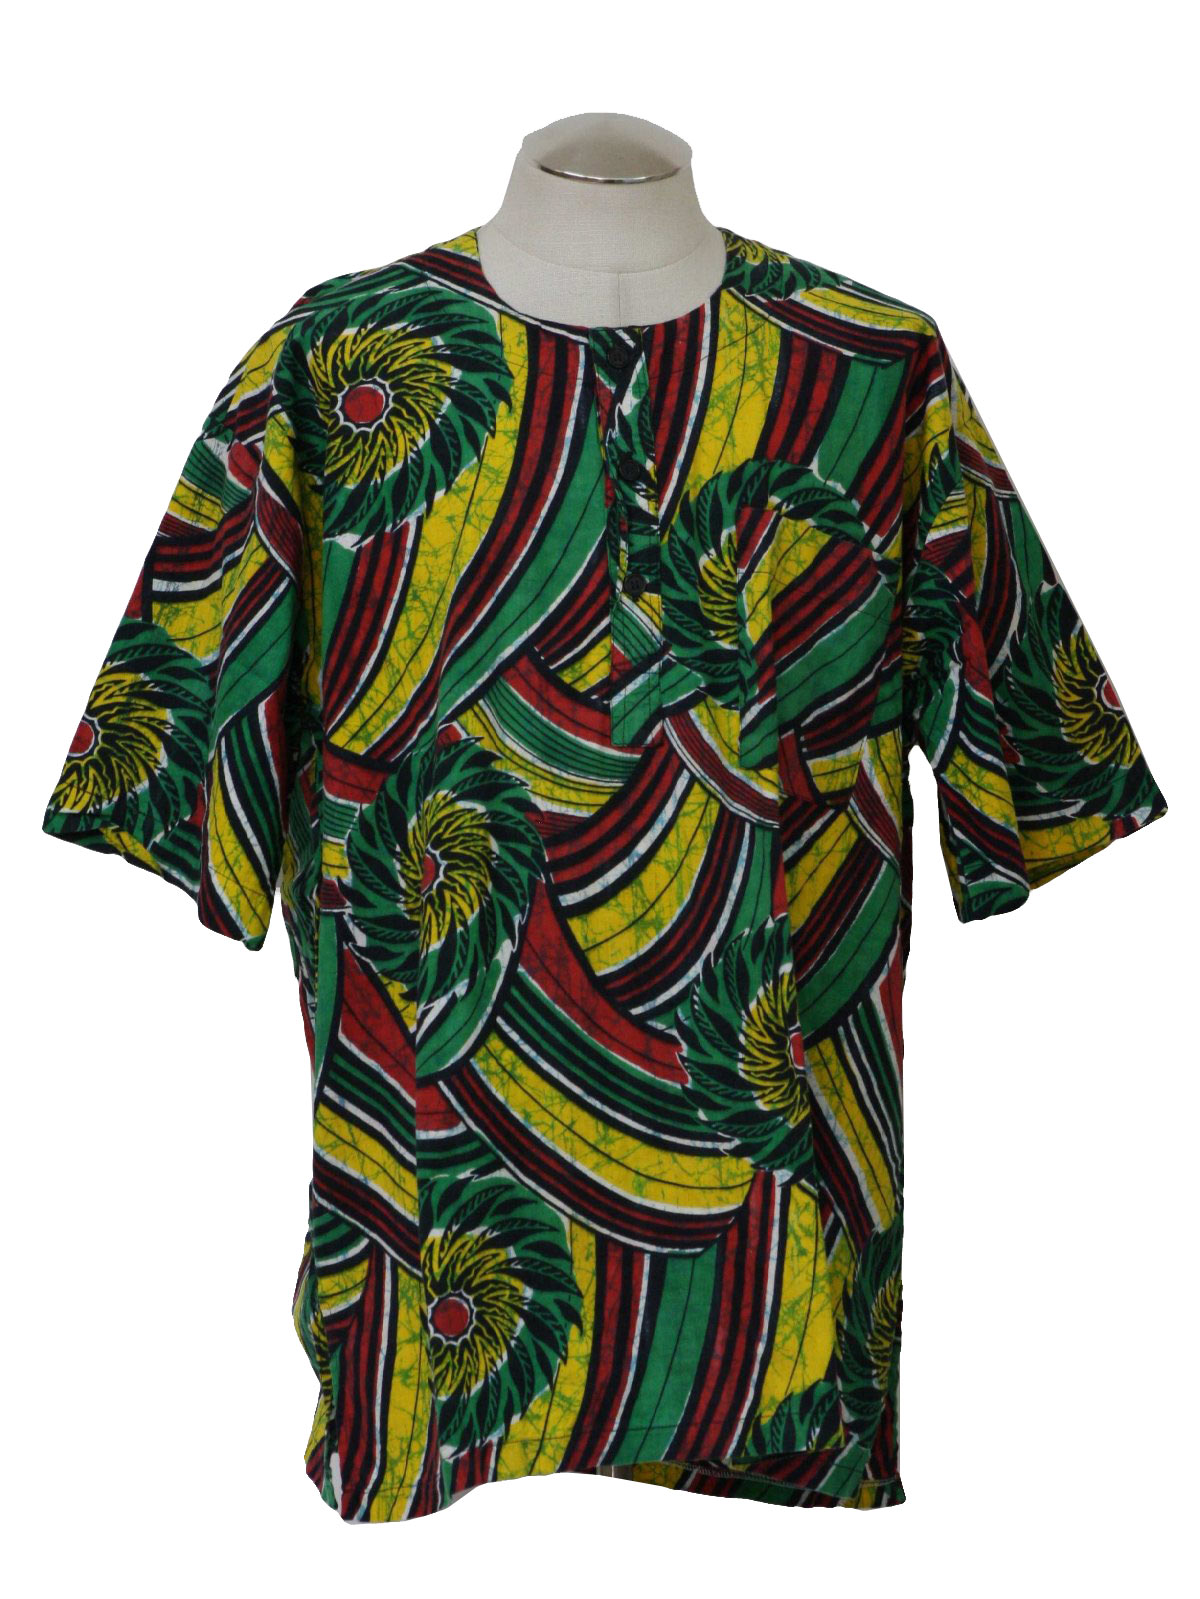 1970s Vintage Hippie Shirt: 70s style made more recently ... | 1200 x 1599 jpeg 302kB